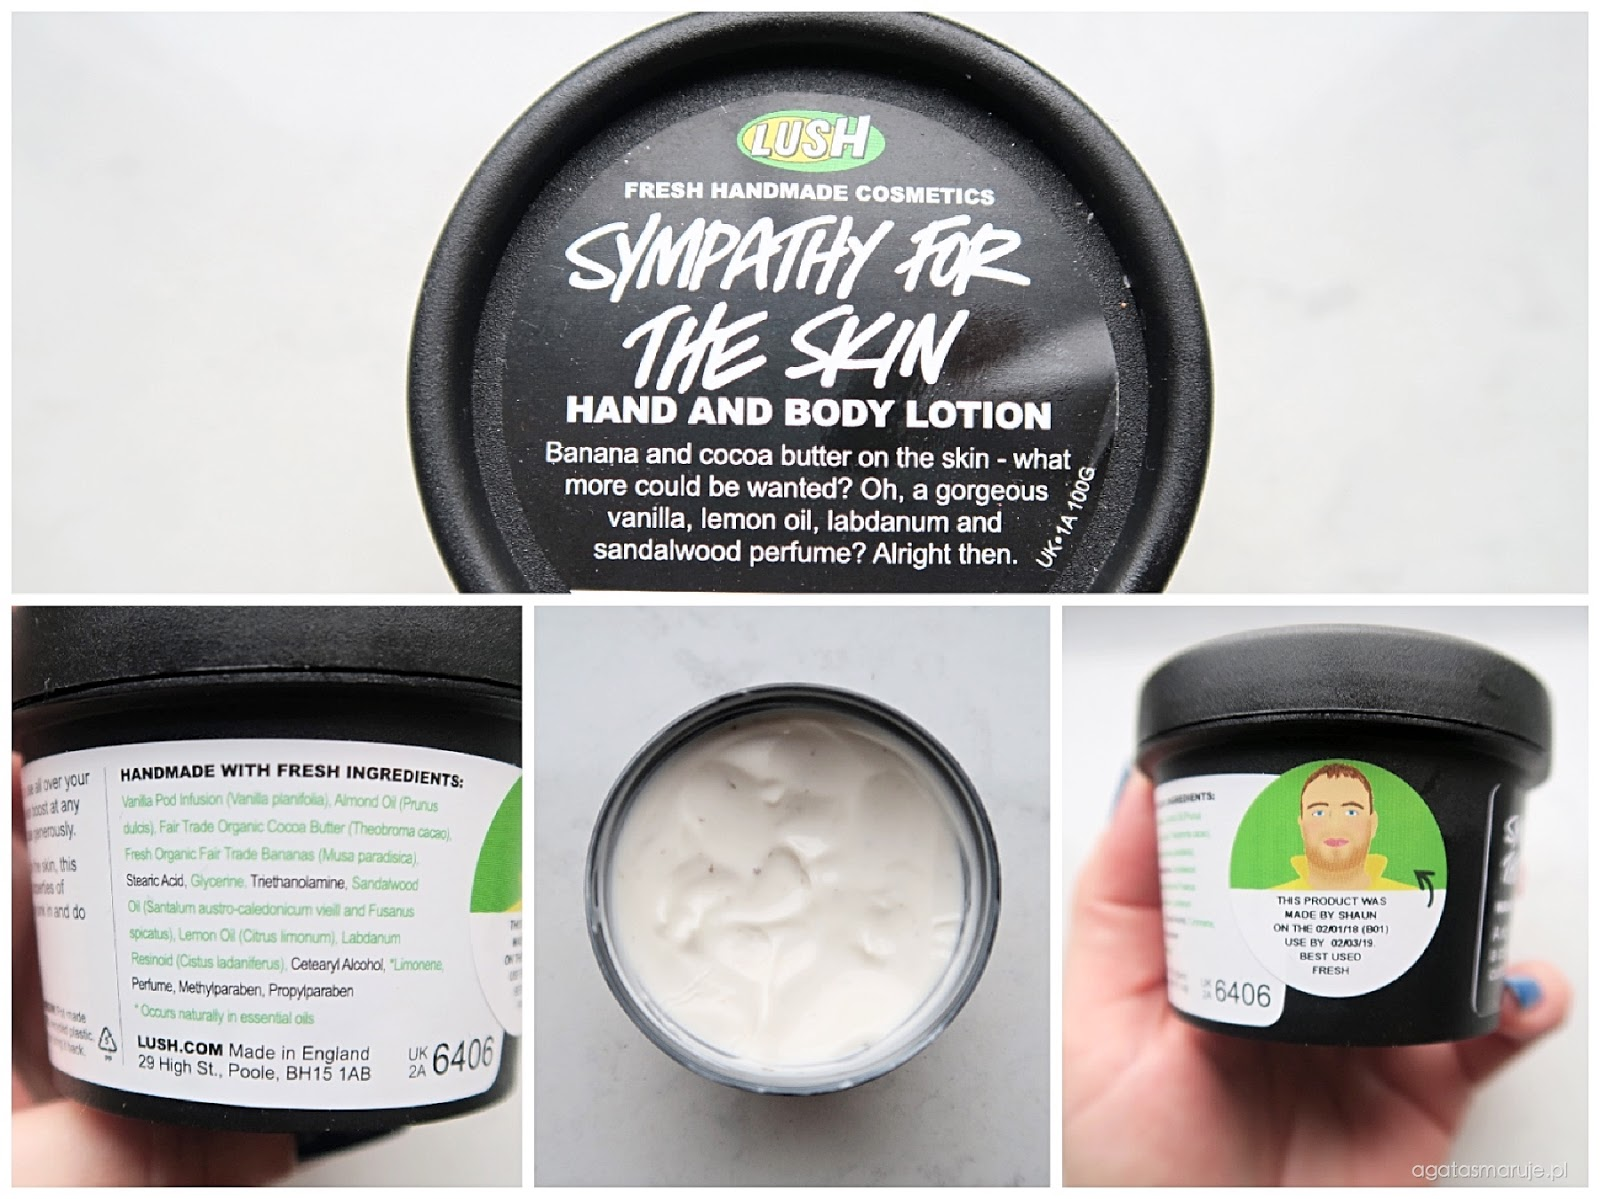 Lush Sympathy For The Skin review